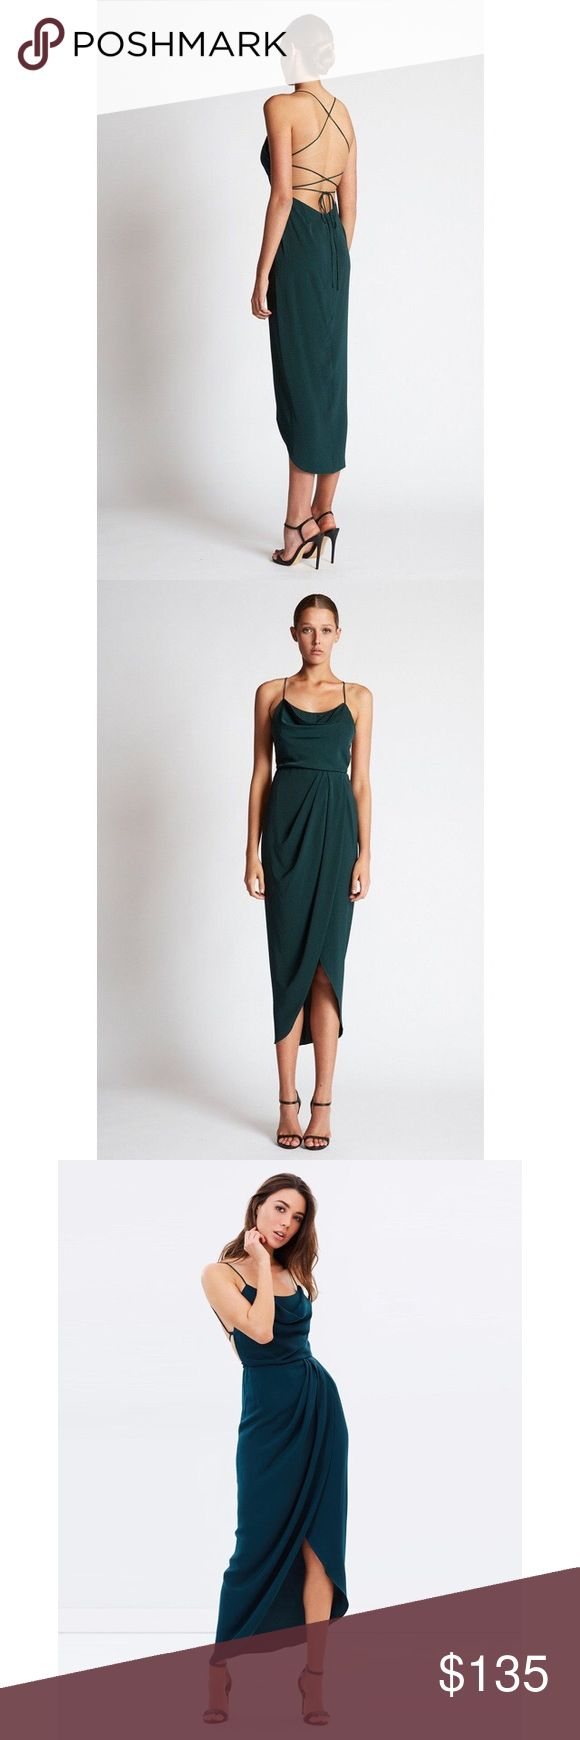 Shona Joy NWT green sold out cowl neck dress NWT